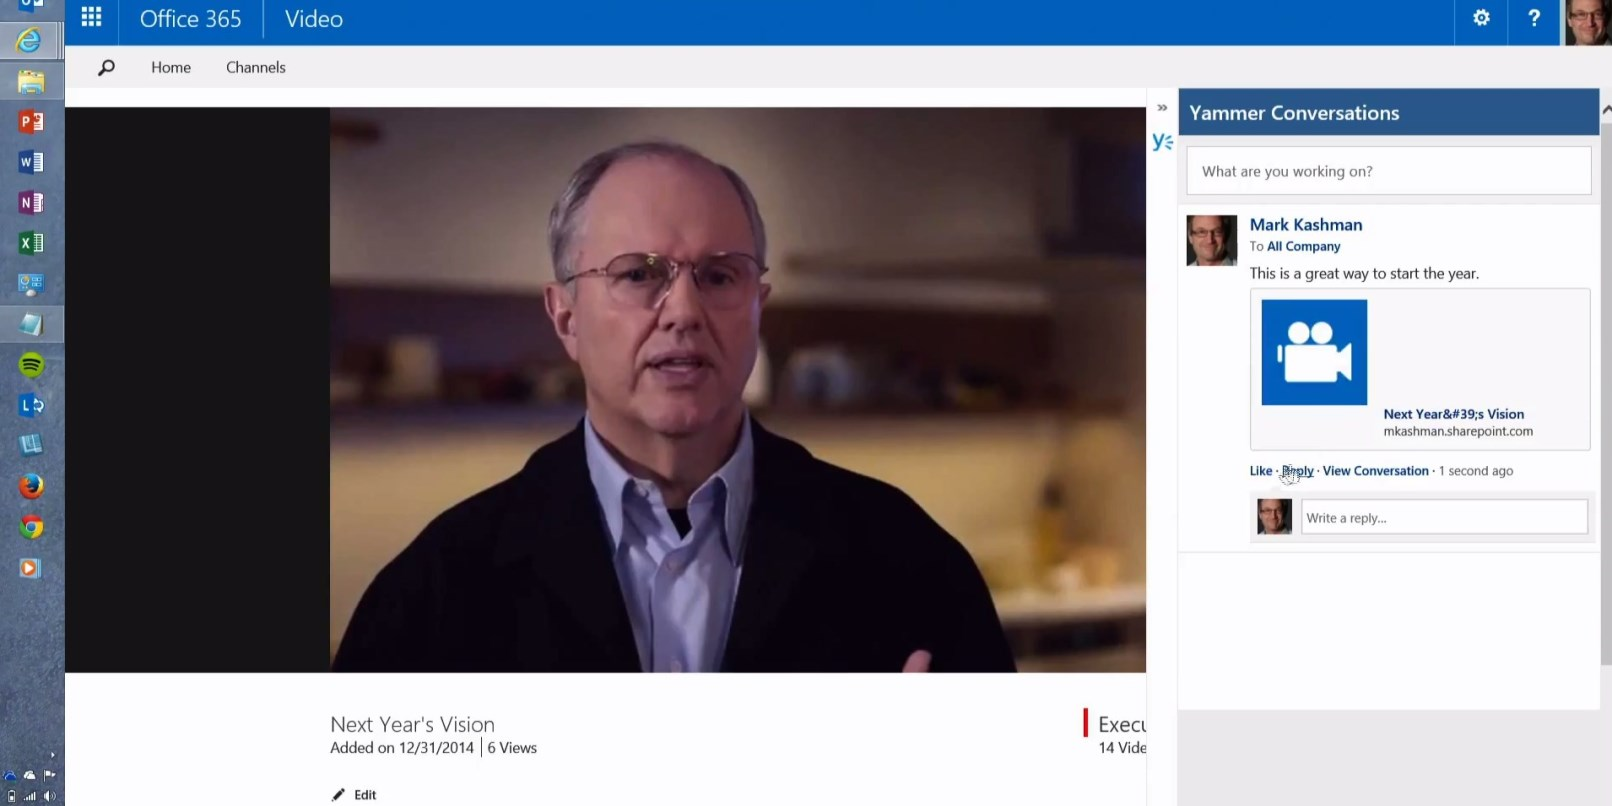 Microsoft Rolls Out Office 365 Video on Desktop and Mobile